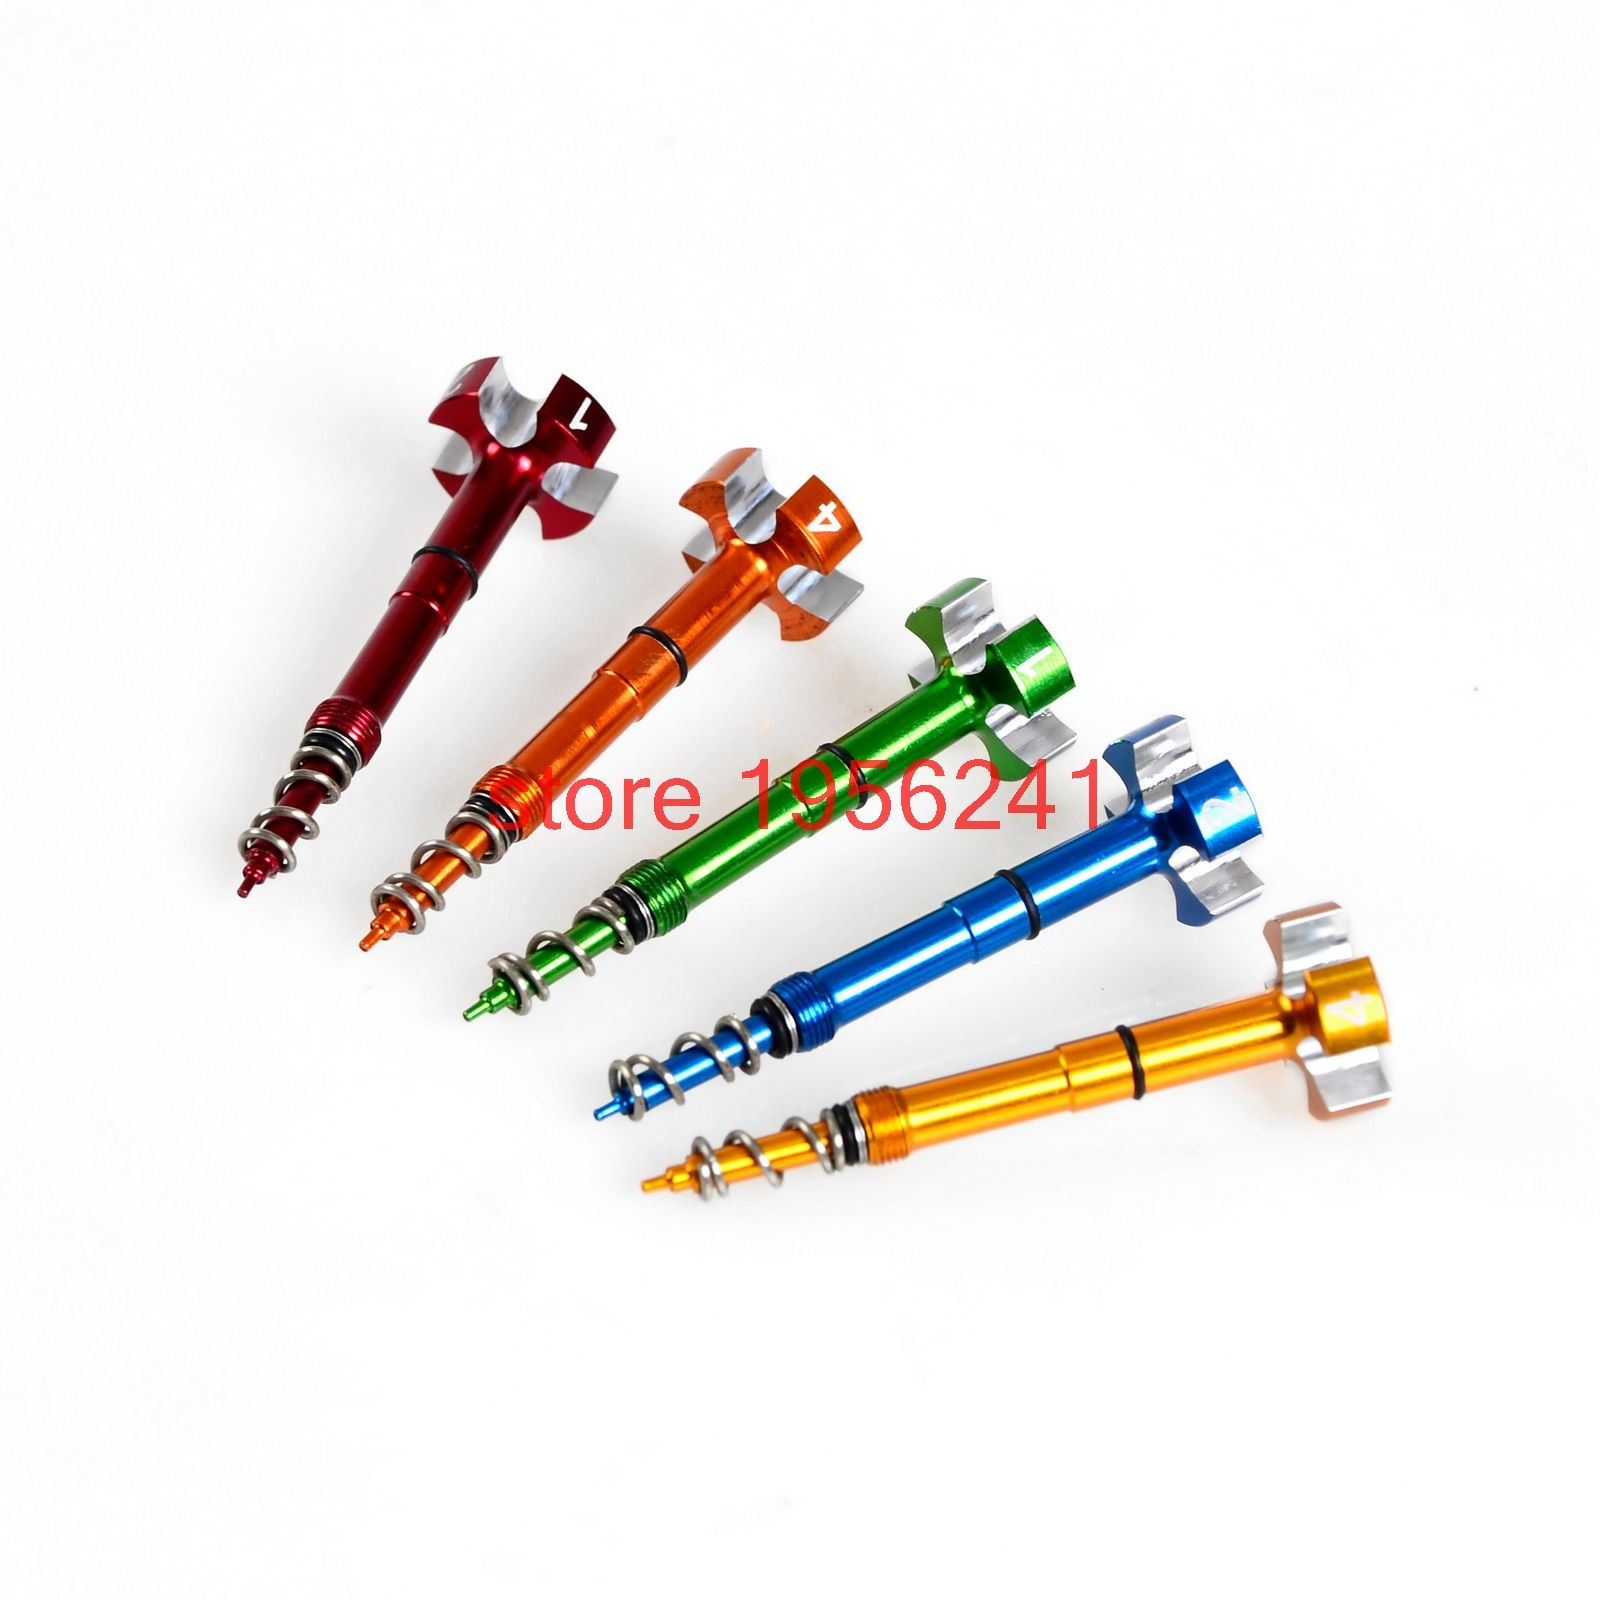 CNC Carburetor Easy Adjustable Fuel Mixture Screw For Yamaha WR250F WR426F WR450F YFZ450 YZ250F YZ426F YZ 250F 426F